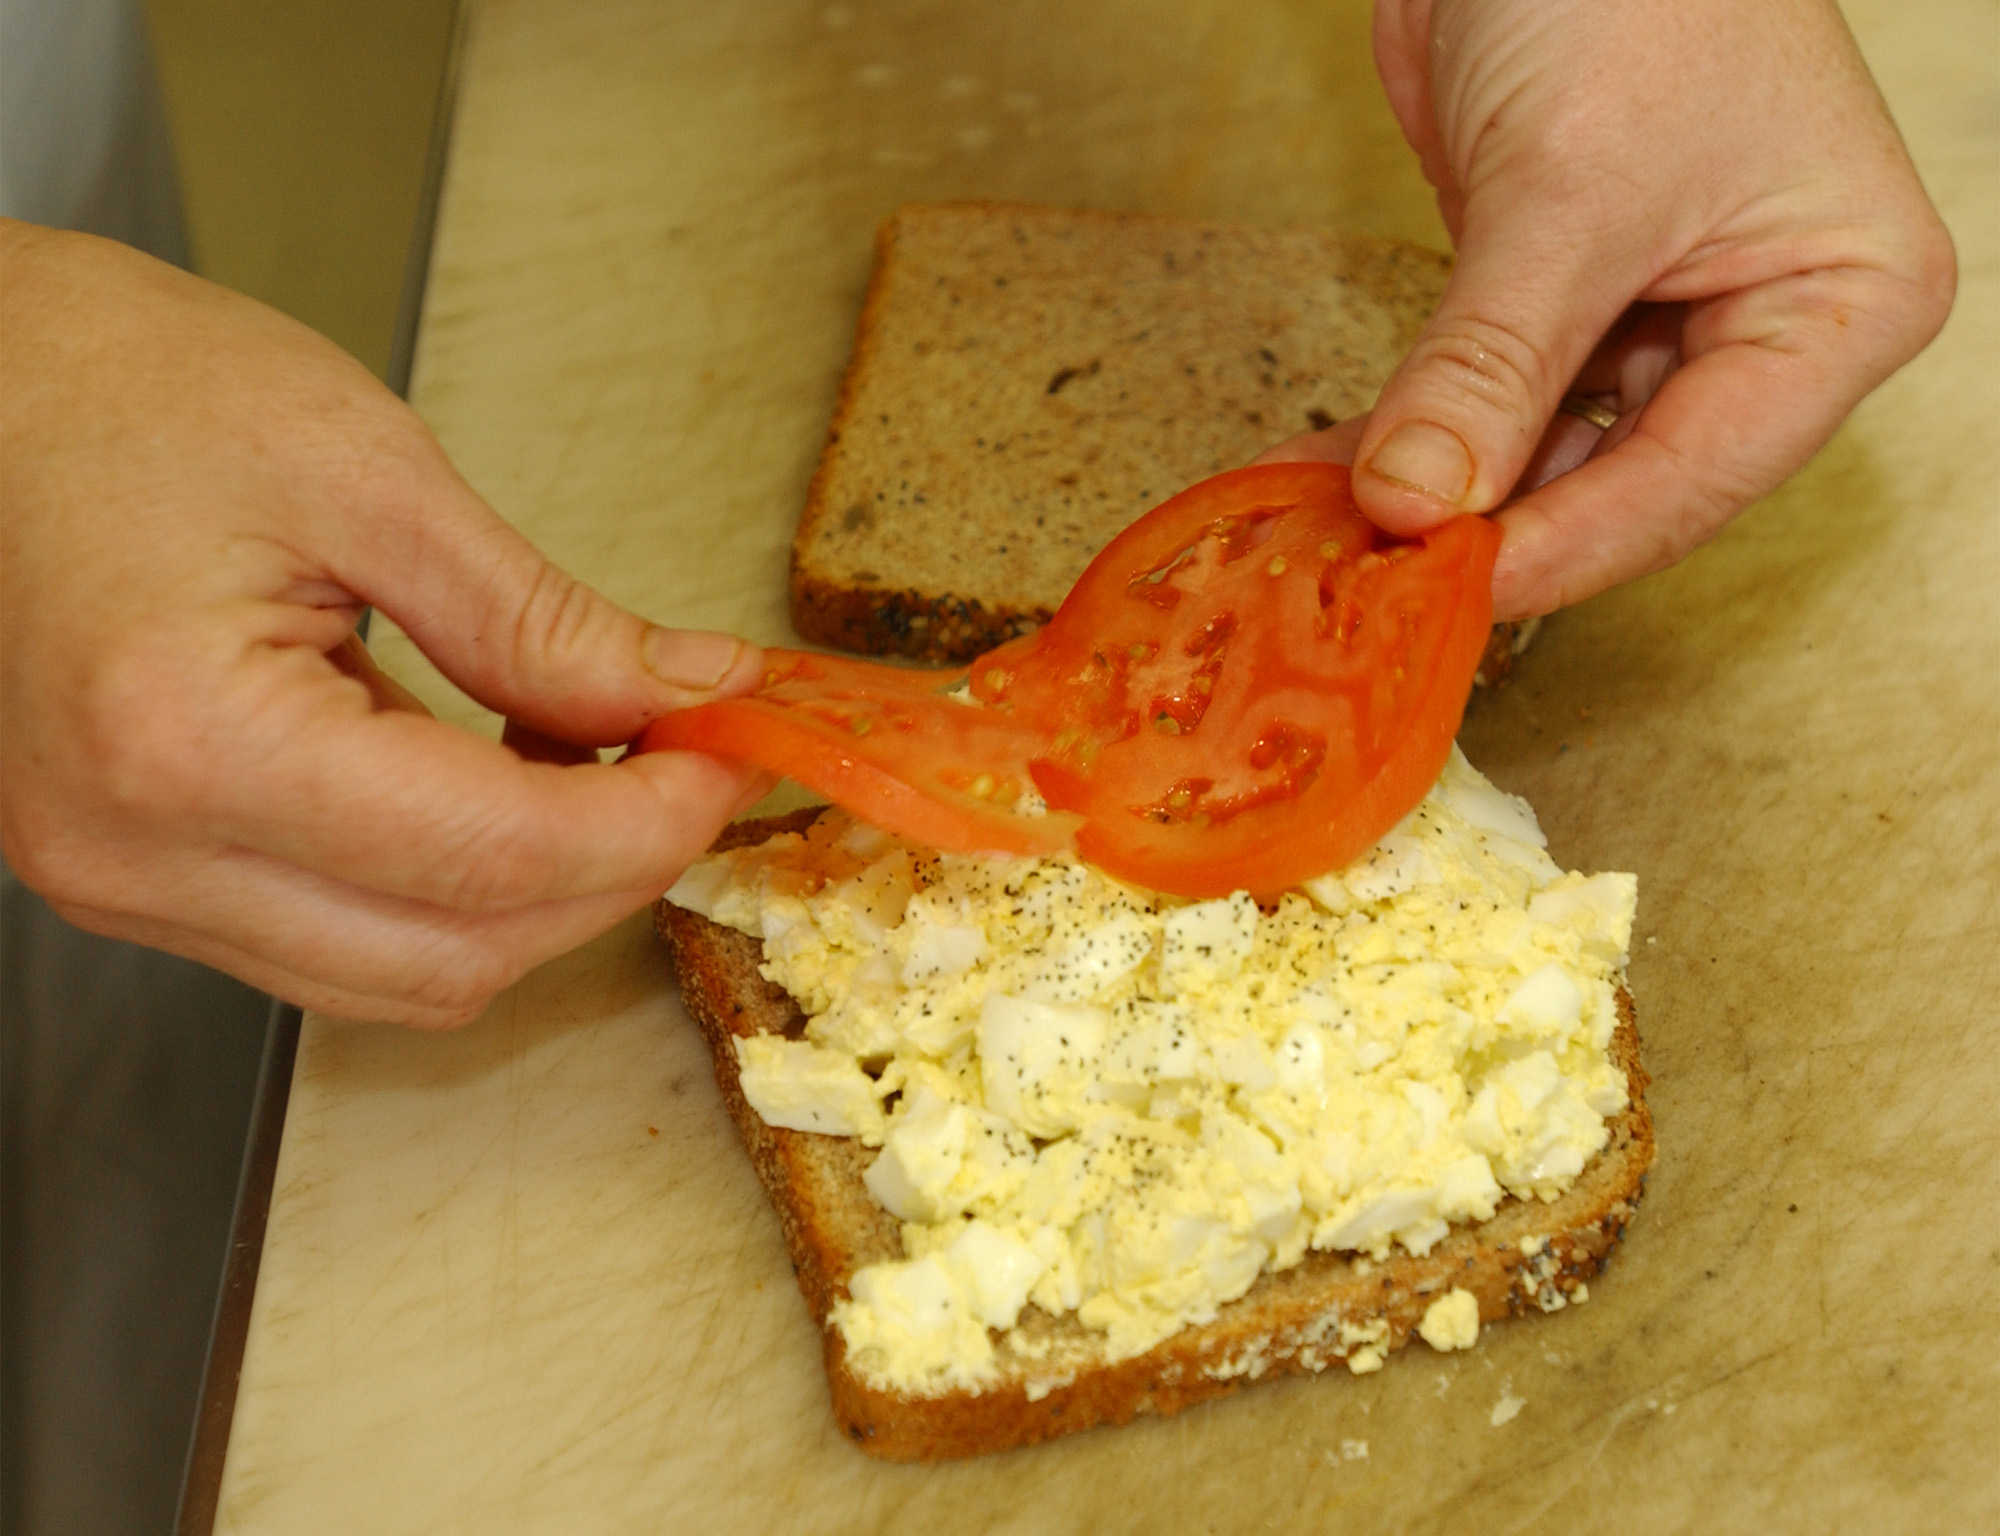 Simone Ryle, owner of Dantes in One city Center lays a couple of tomato slices on an egg salad sandw